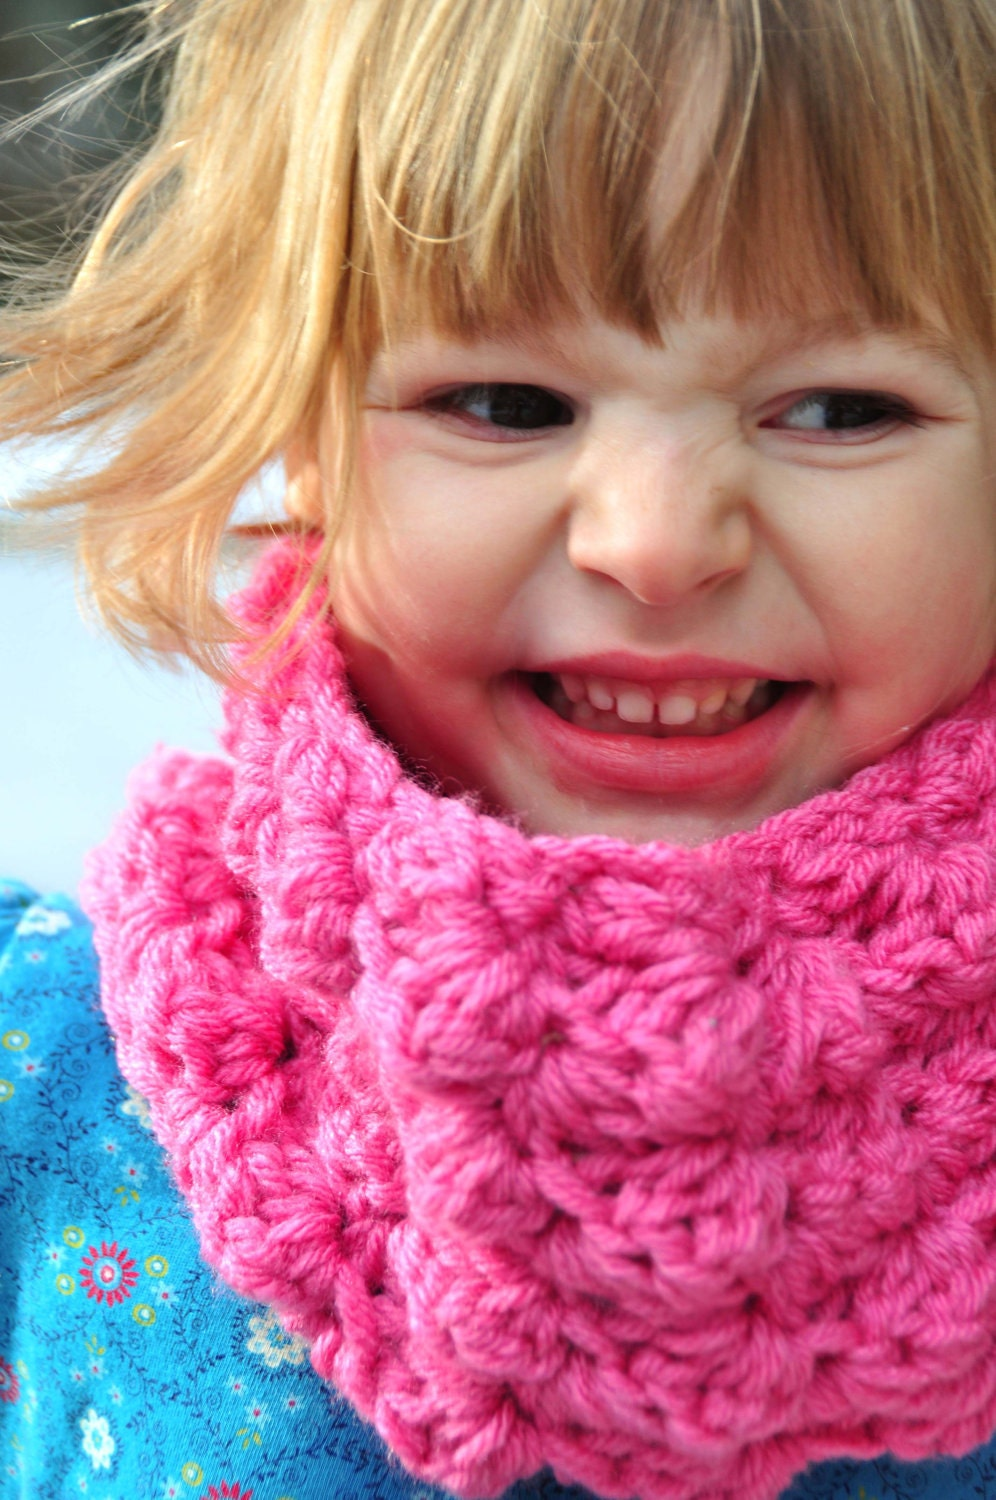 Childrens Scarf Pattern Crochet Sedge Stitch Cowl PDF DIGITAL  Crochet Childrens Scarf